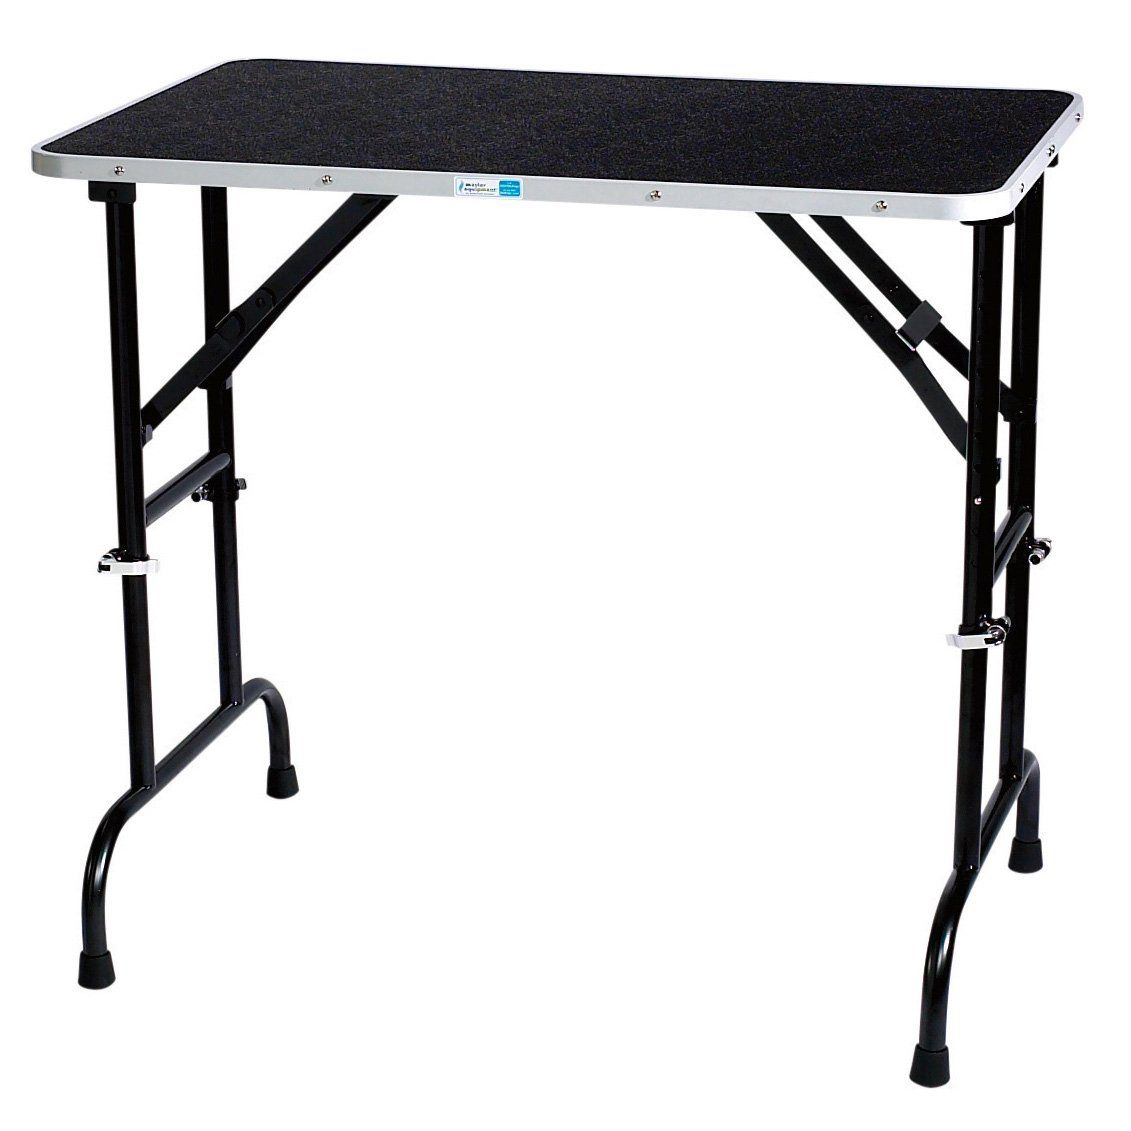 Master Equipment Adjustable Height Grooming Table 42 by